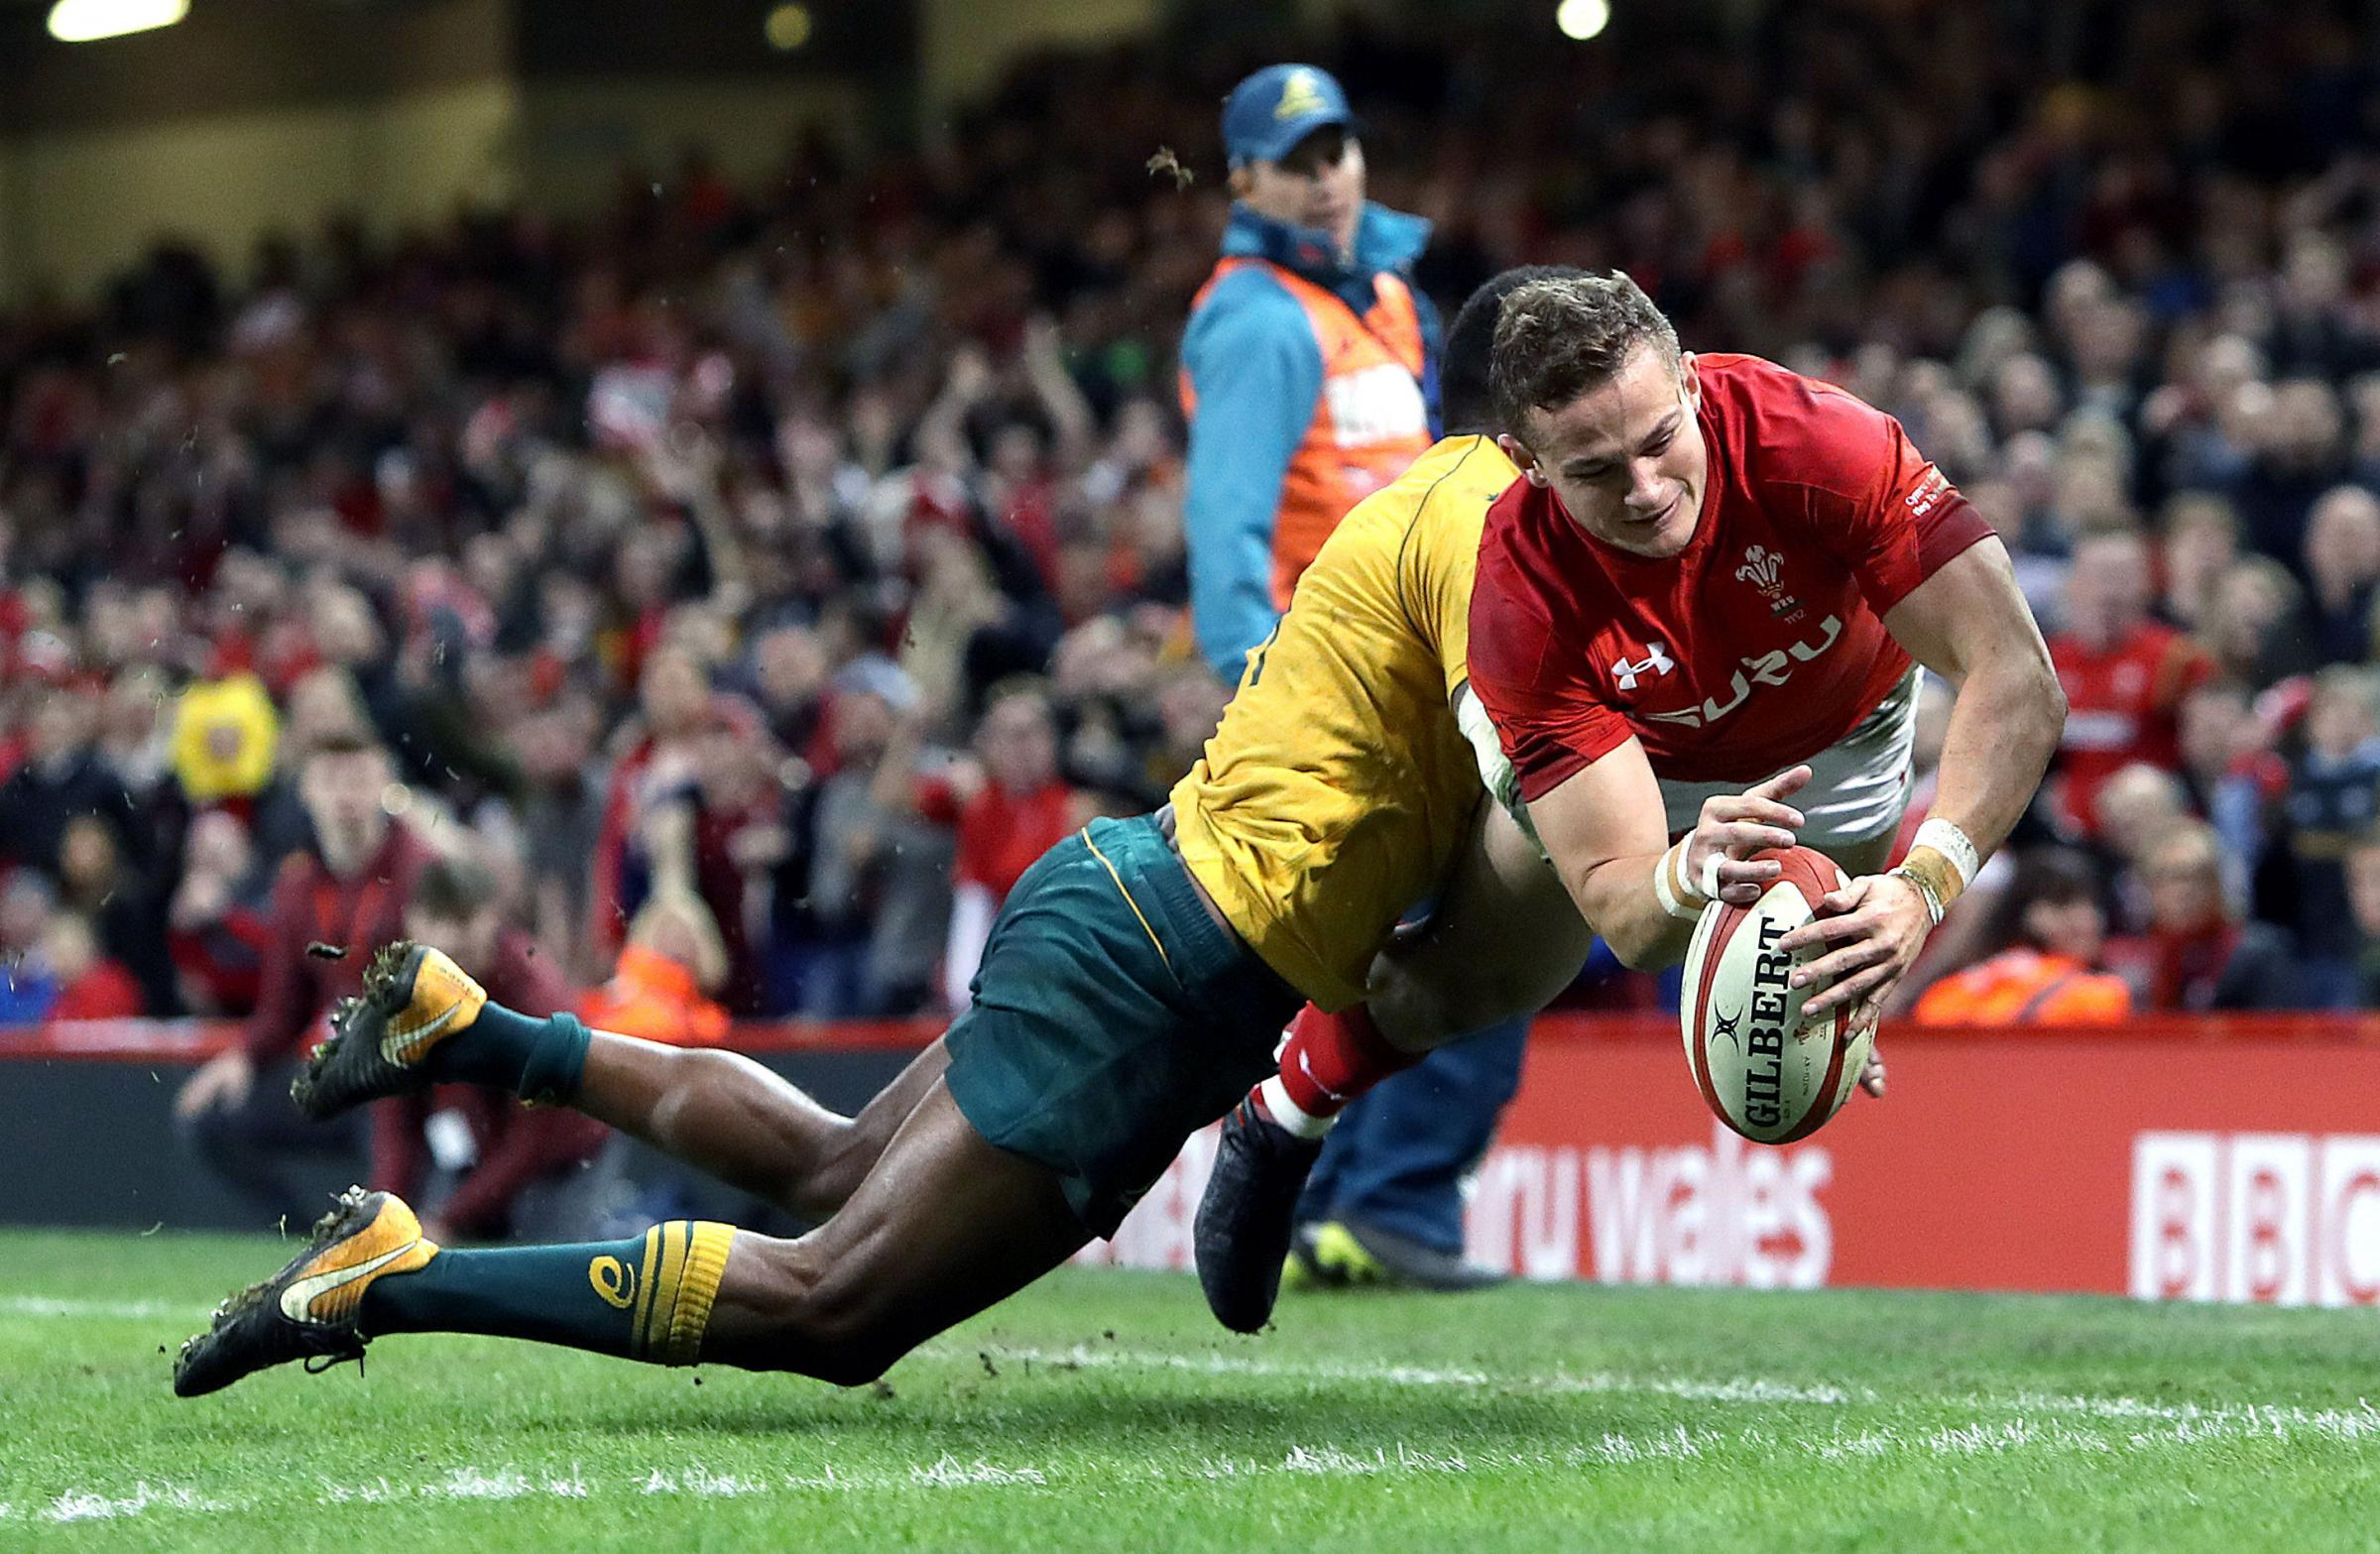 SEVENS CONTENDER: Dragons full-back/wing Hallam Amos, pictured scoring against Australia for Wales, is being considered for the Commonwealth Games